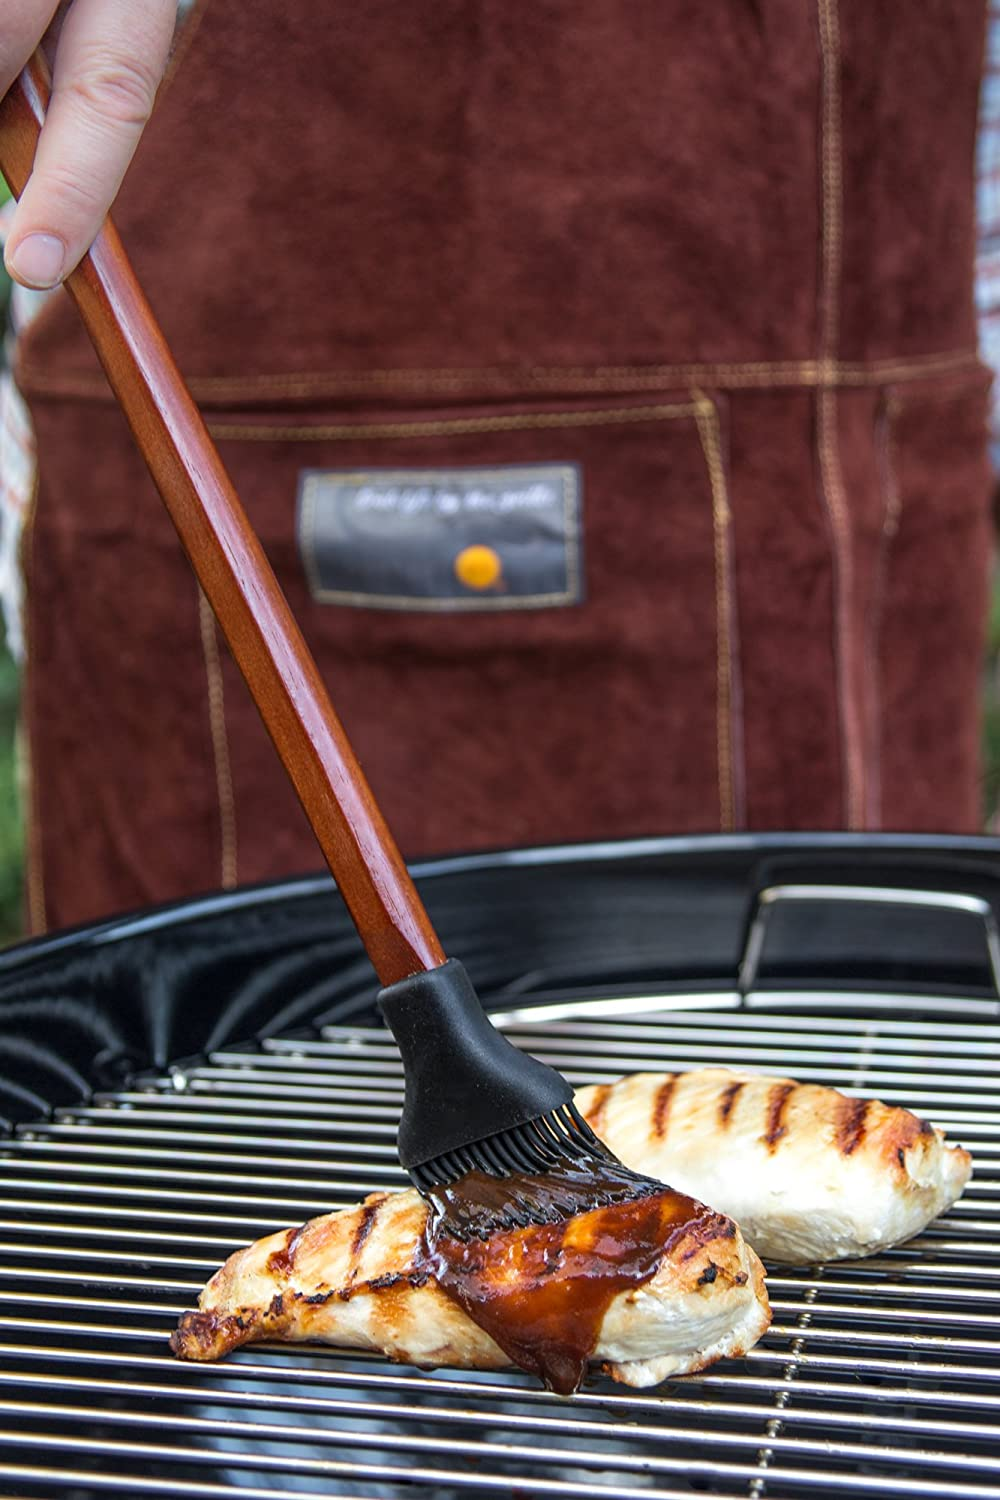 Amazon.com : Outset QB48 Rosewood Collection Basting Brush with Removable Silicone Bristles : Garden & Outdoor